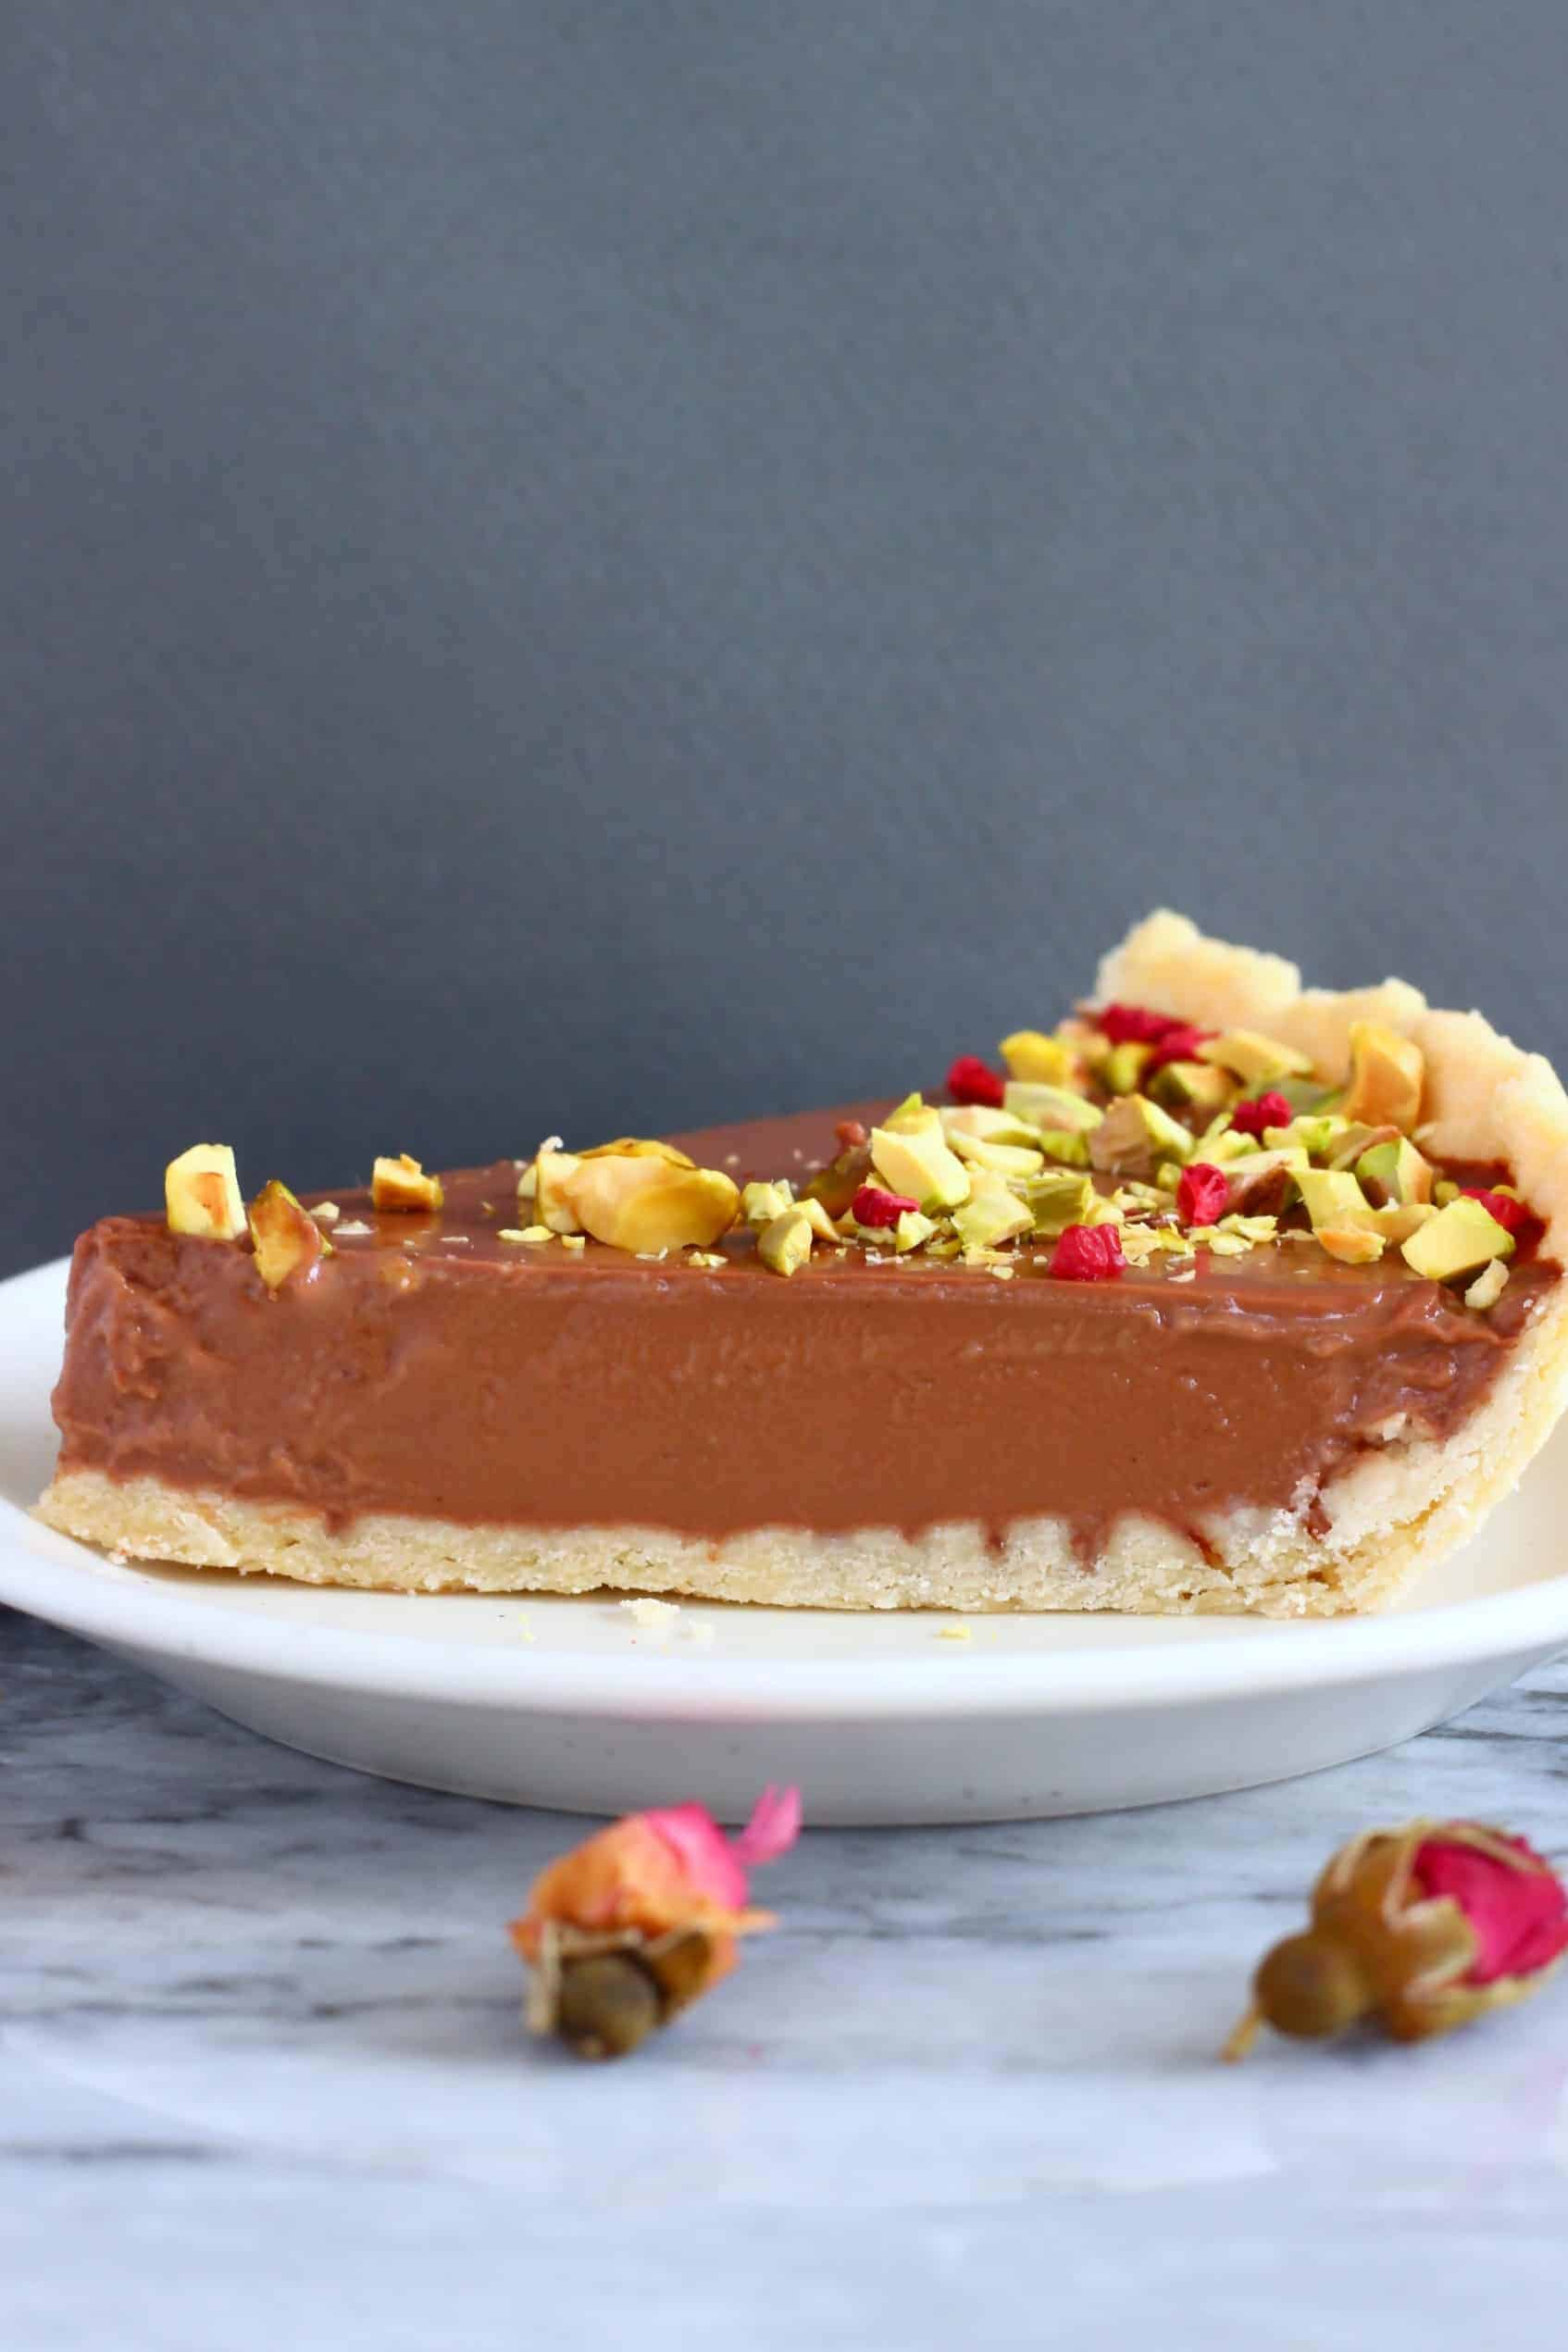 A slice of chocolate tart topped with chopped pistachios and freeze-dried raspberries on a white plate against a grey background